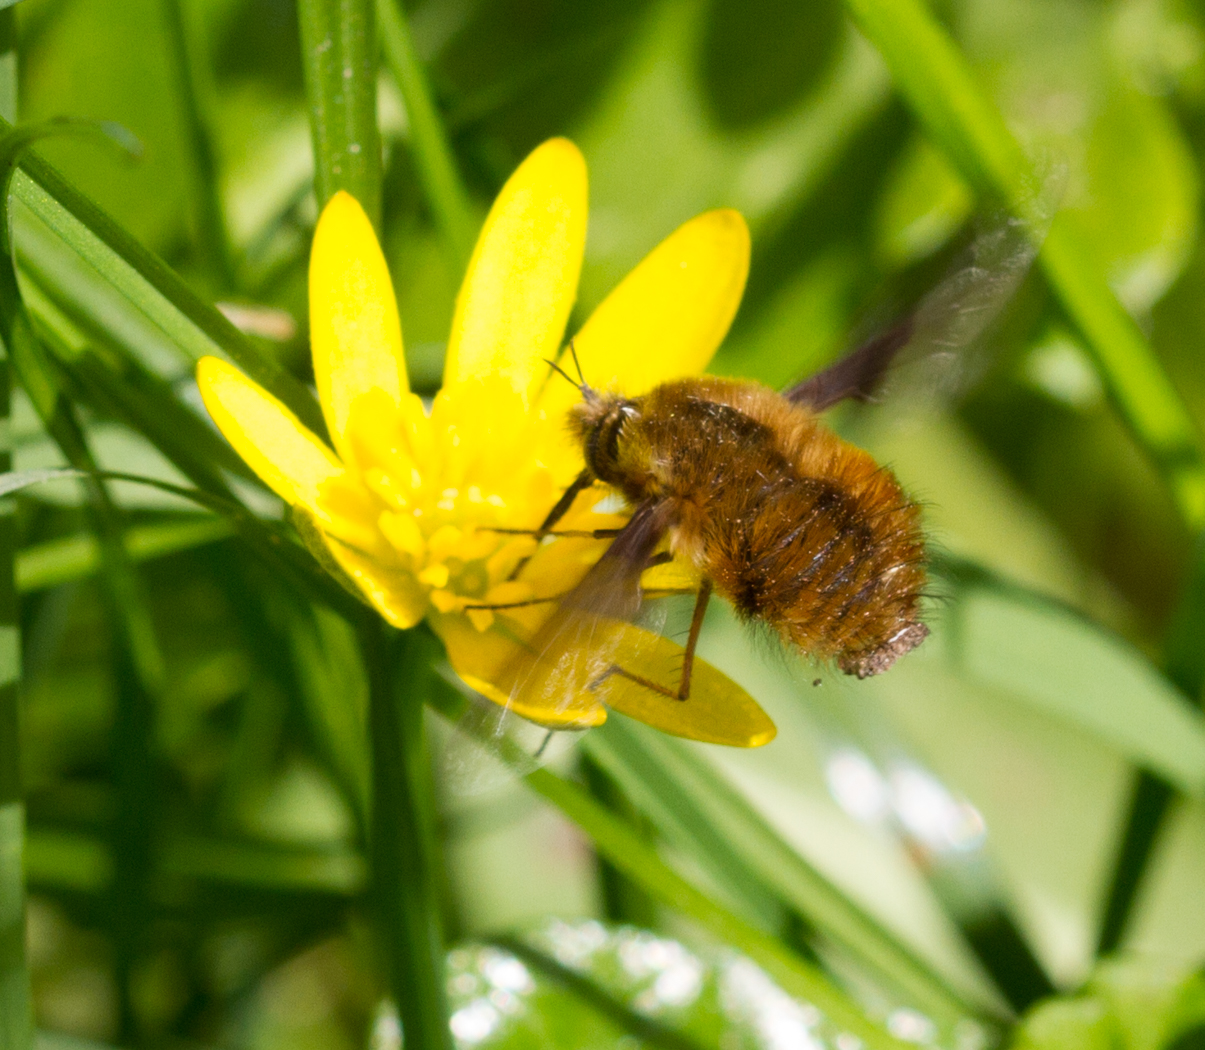 Buttercup and beefly